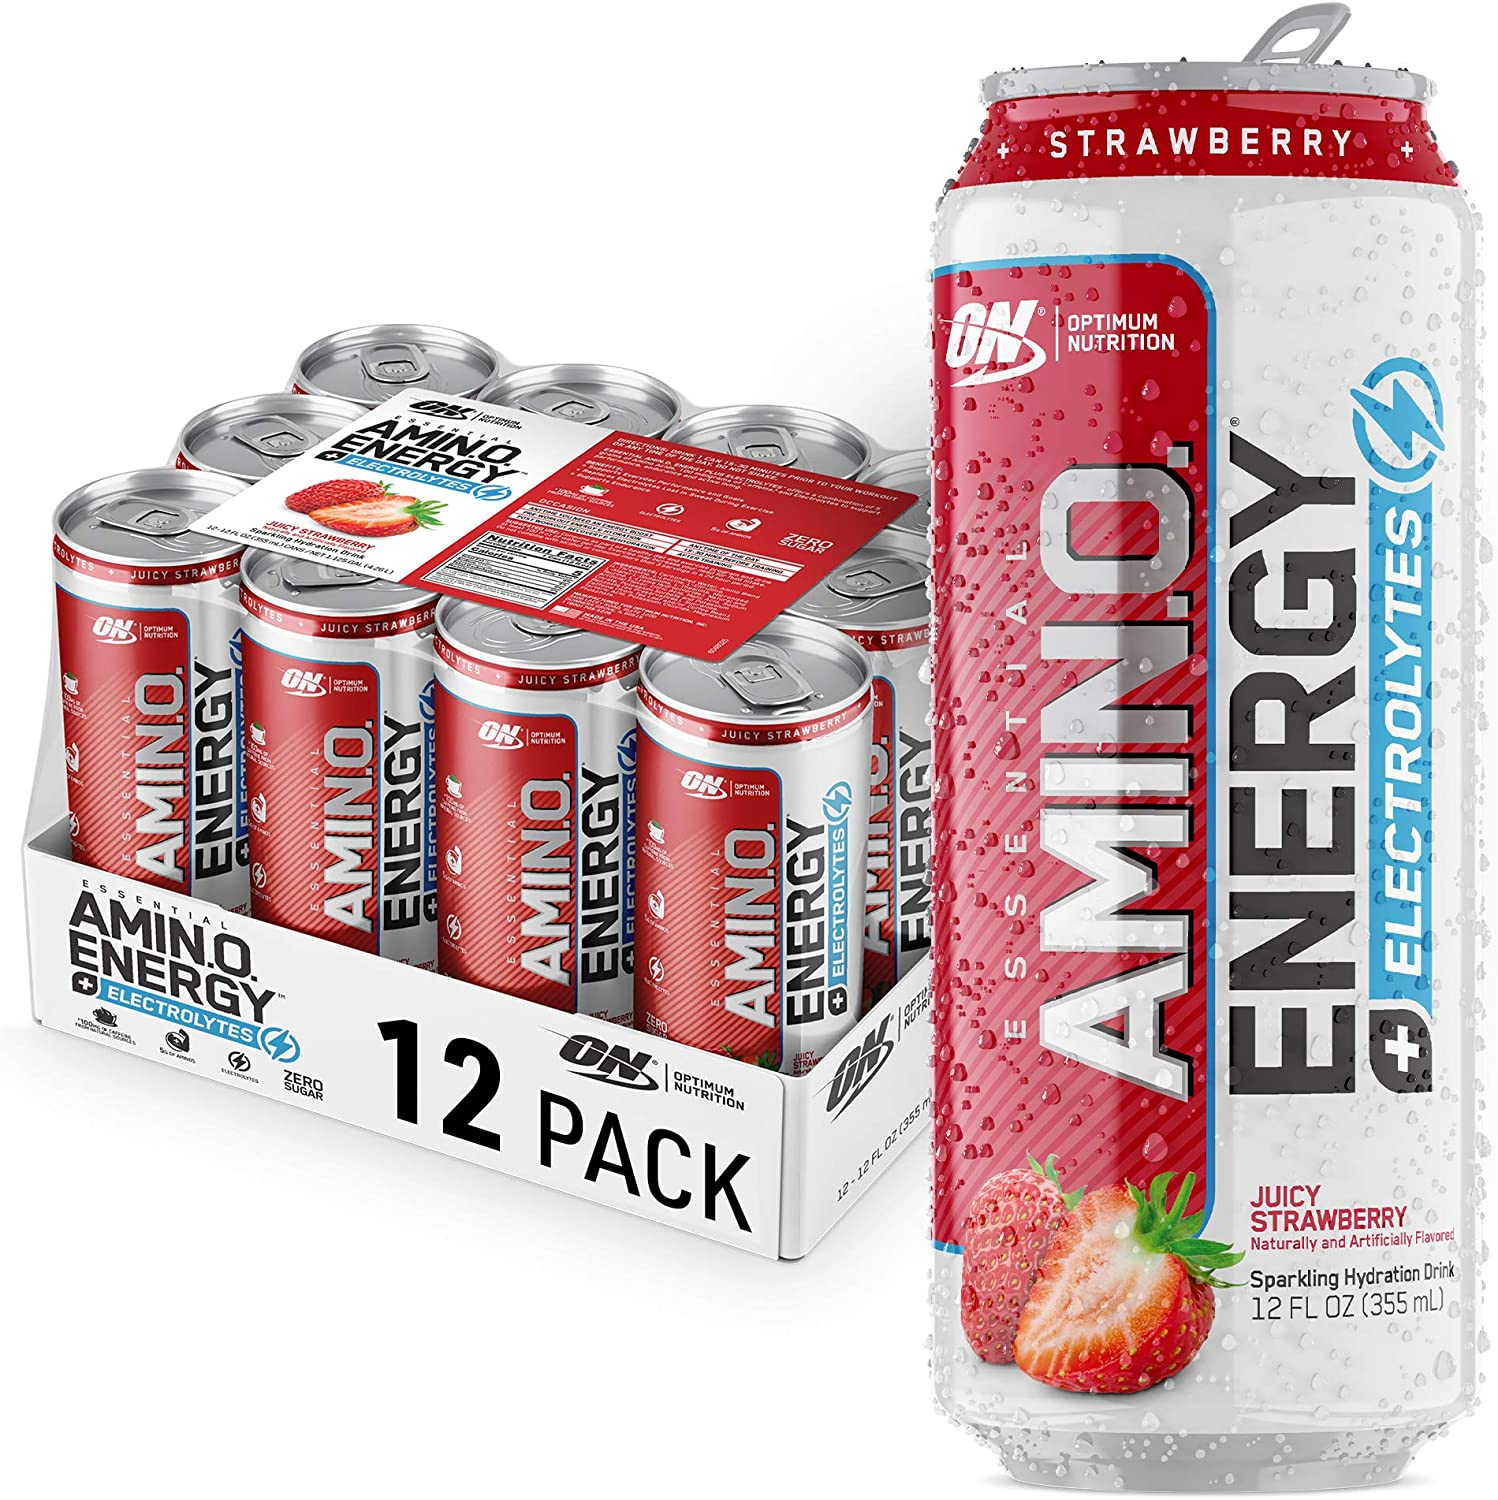 Optimum Nutrition Amino Energy + Electrolytes Sparkling Hydration Drink - Pre Workout, BCAA, Keto Friendly, Energy Powder - Juicy Strawberry, 12 Count